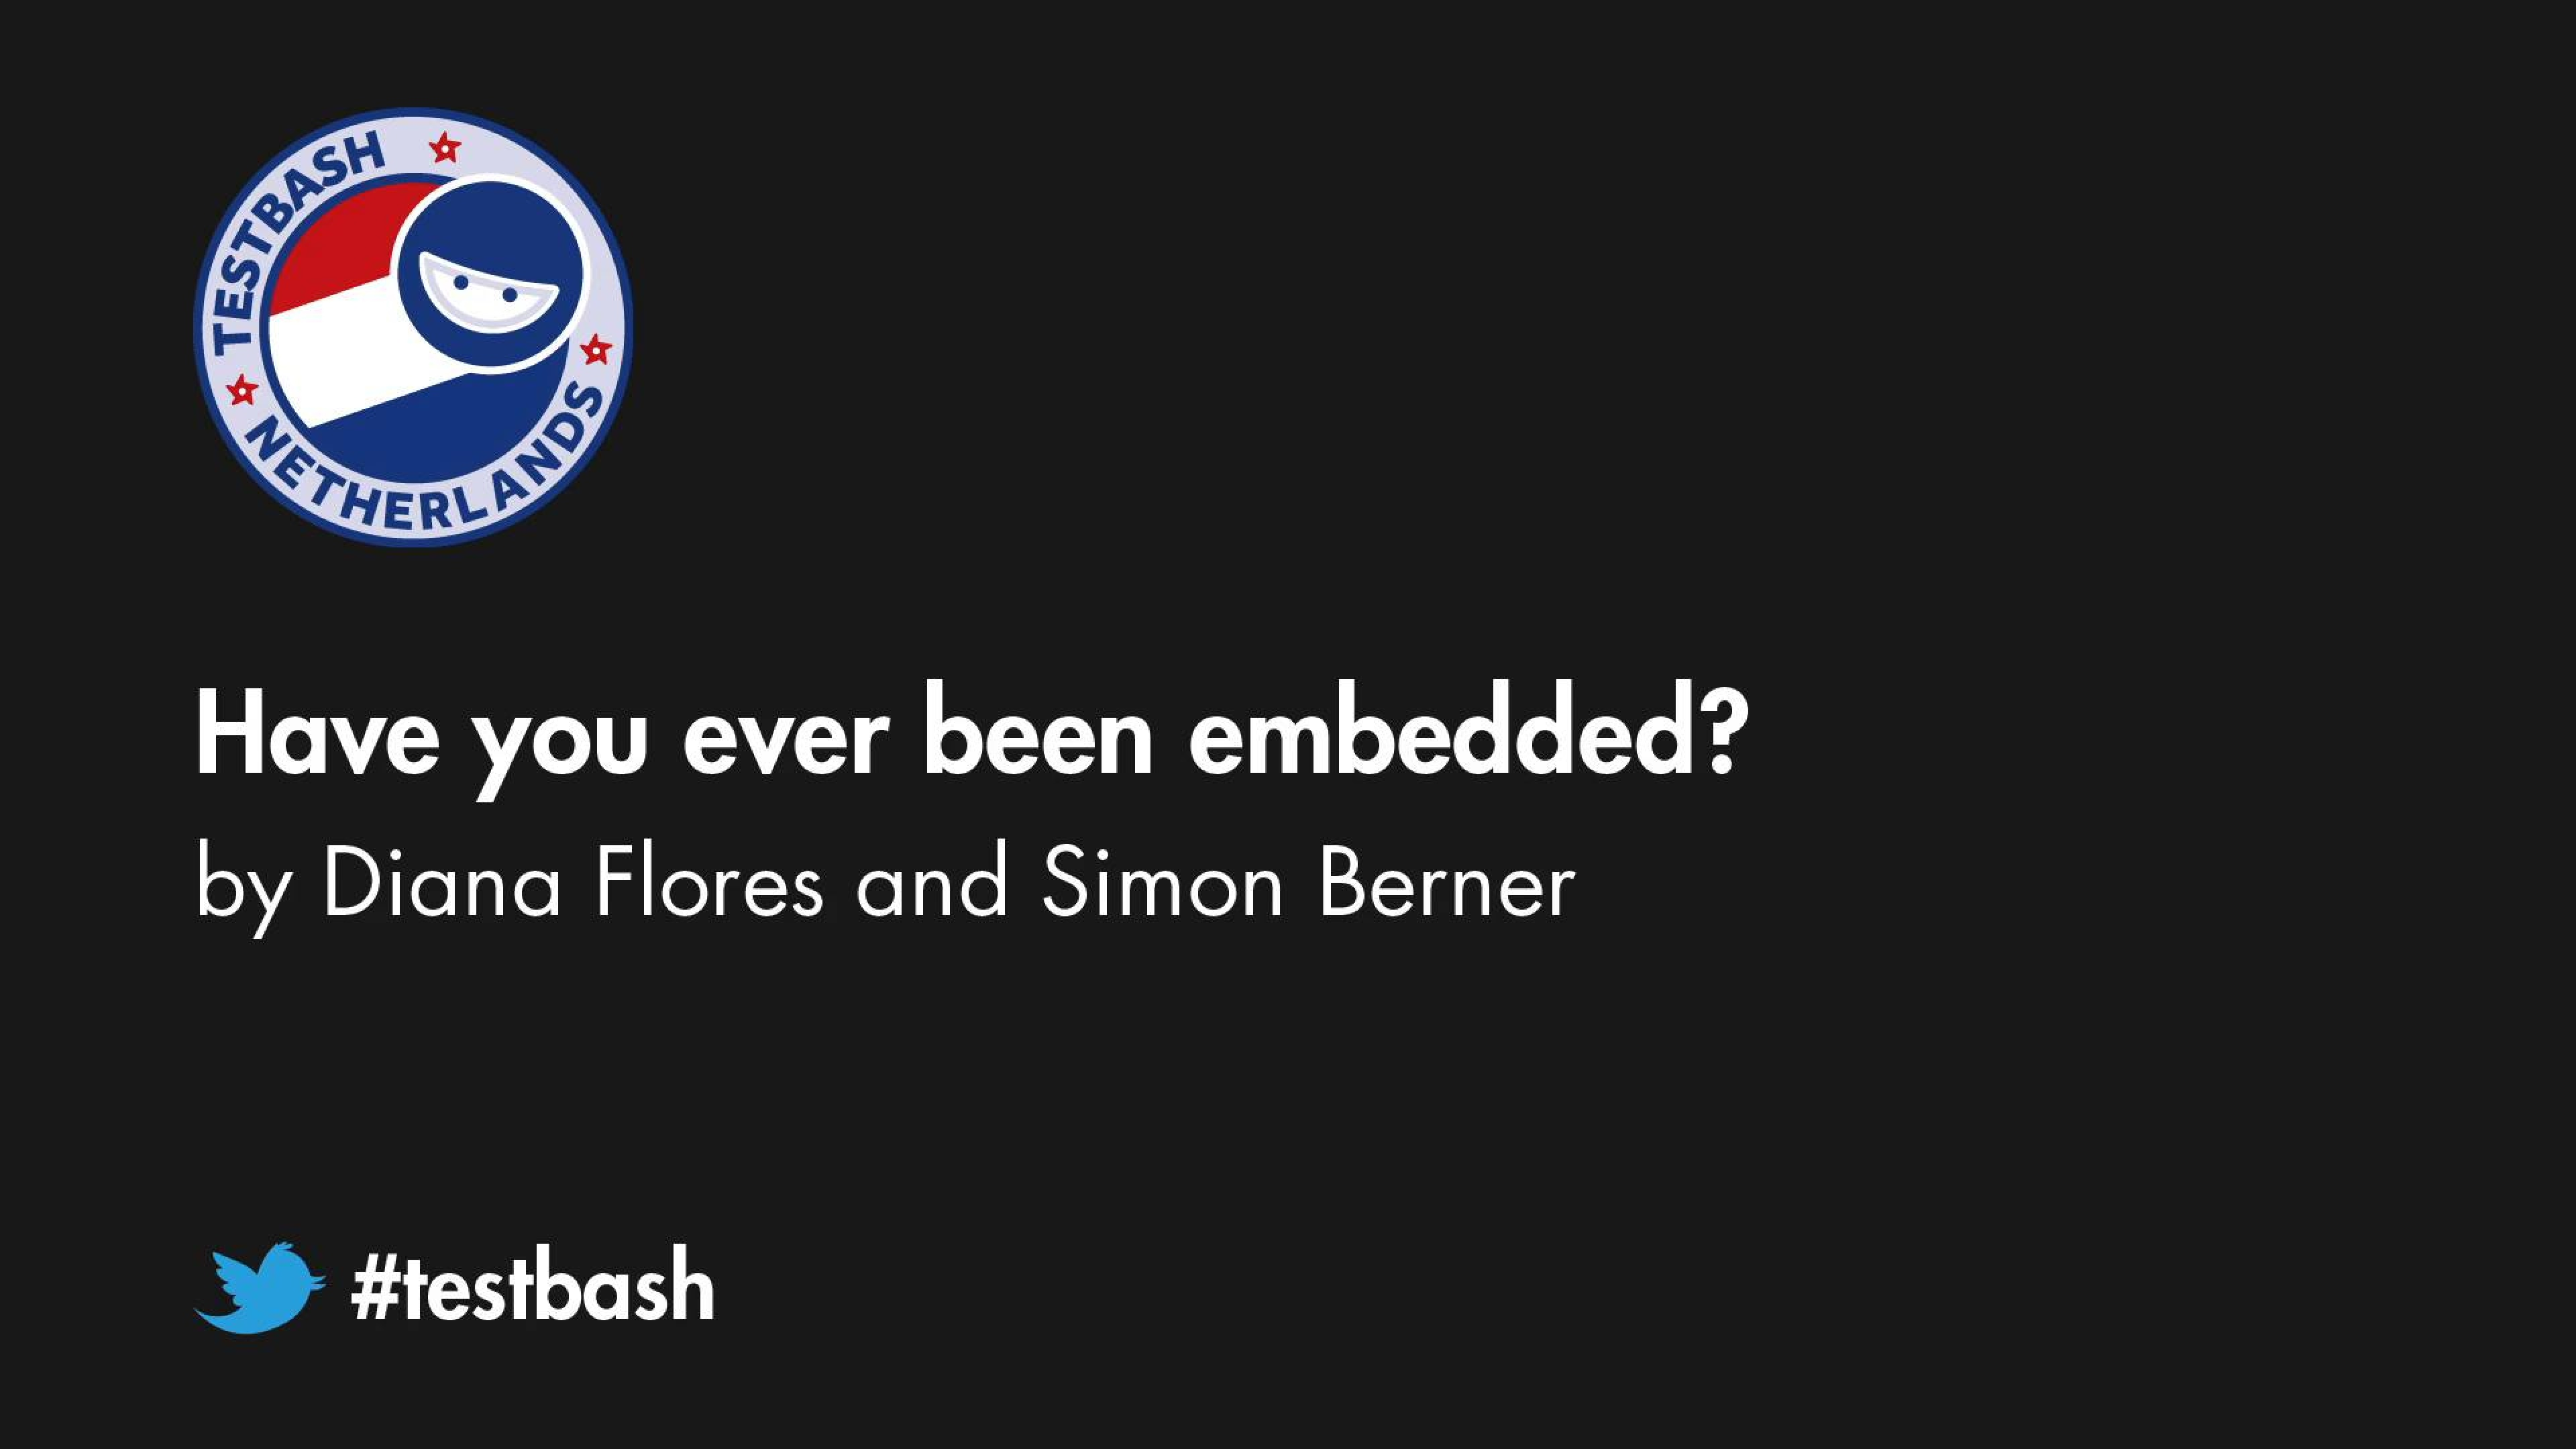 Have you ever been embedded? - Simon Berner / Diana Flores